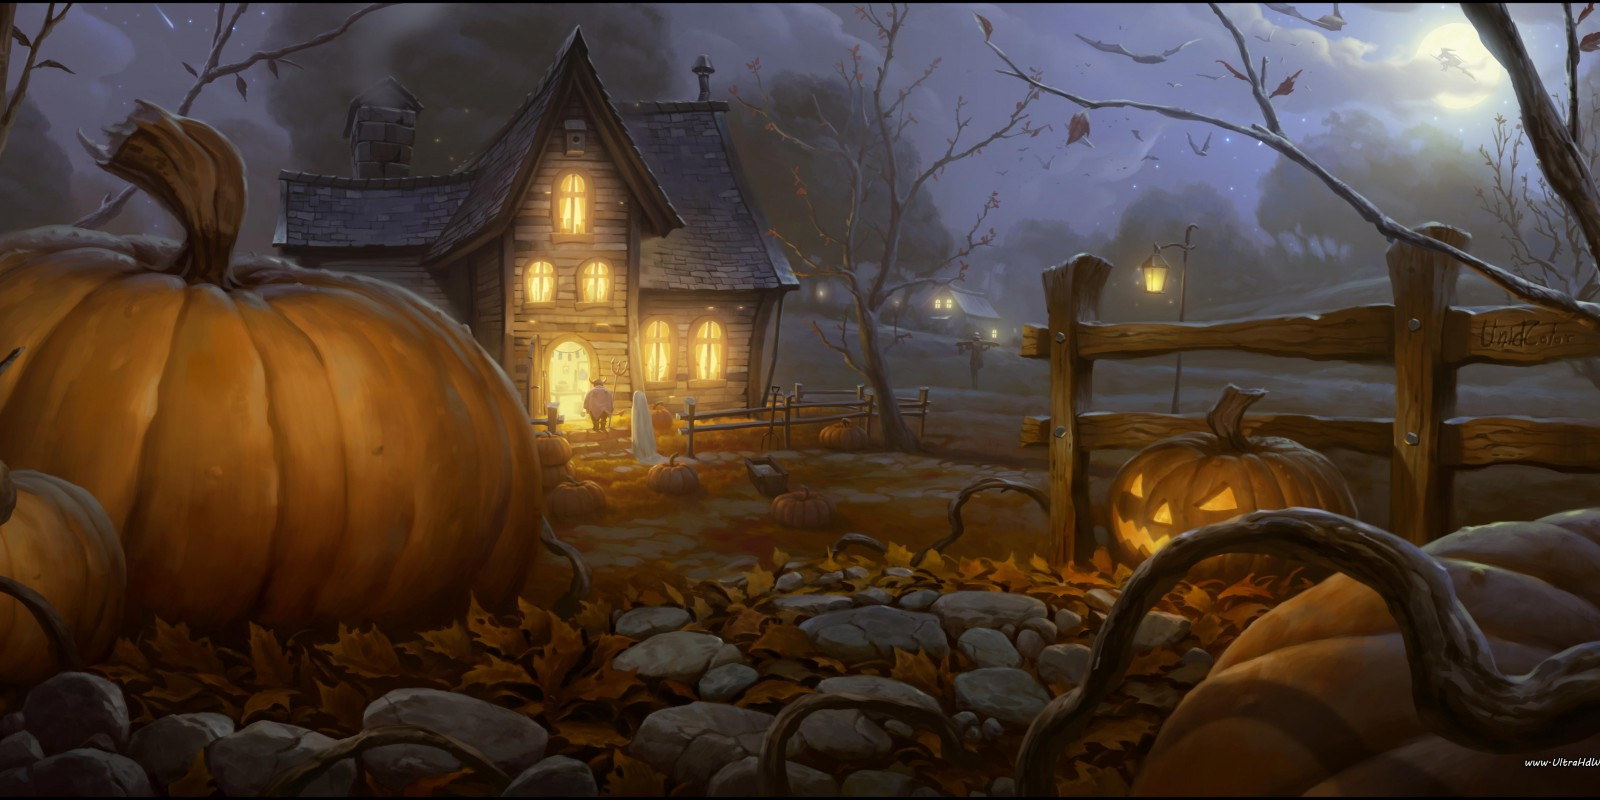 Halloween Safety Tips and Trick-or-Treat Hours